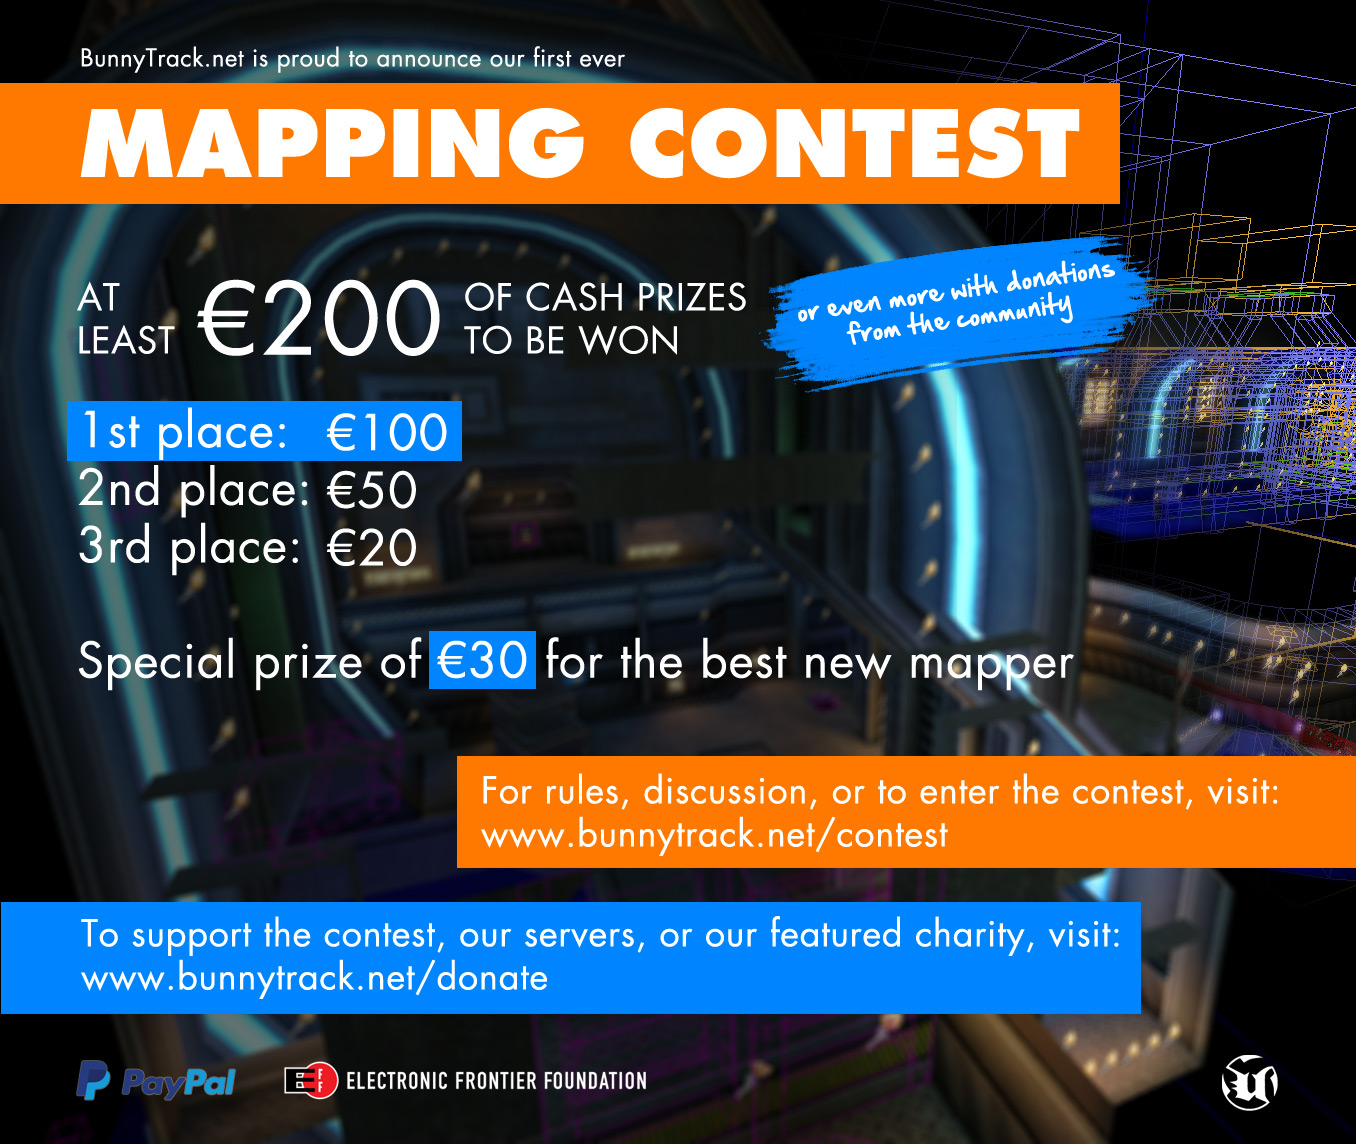 Mapping contest details